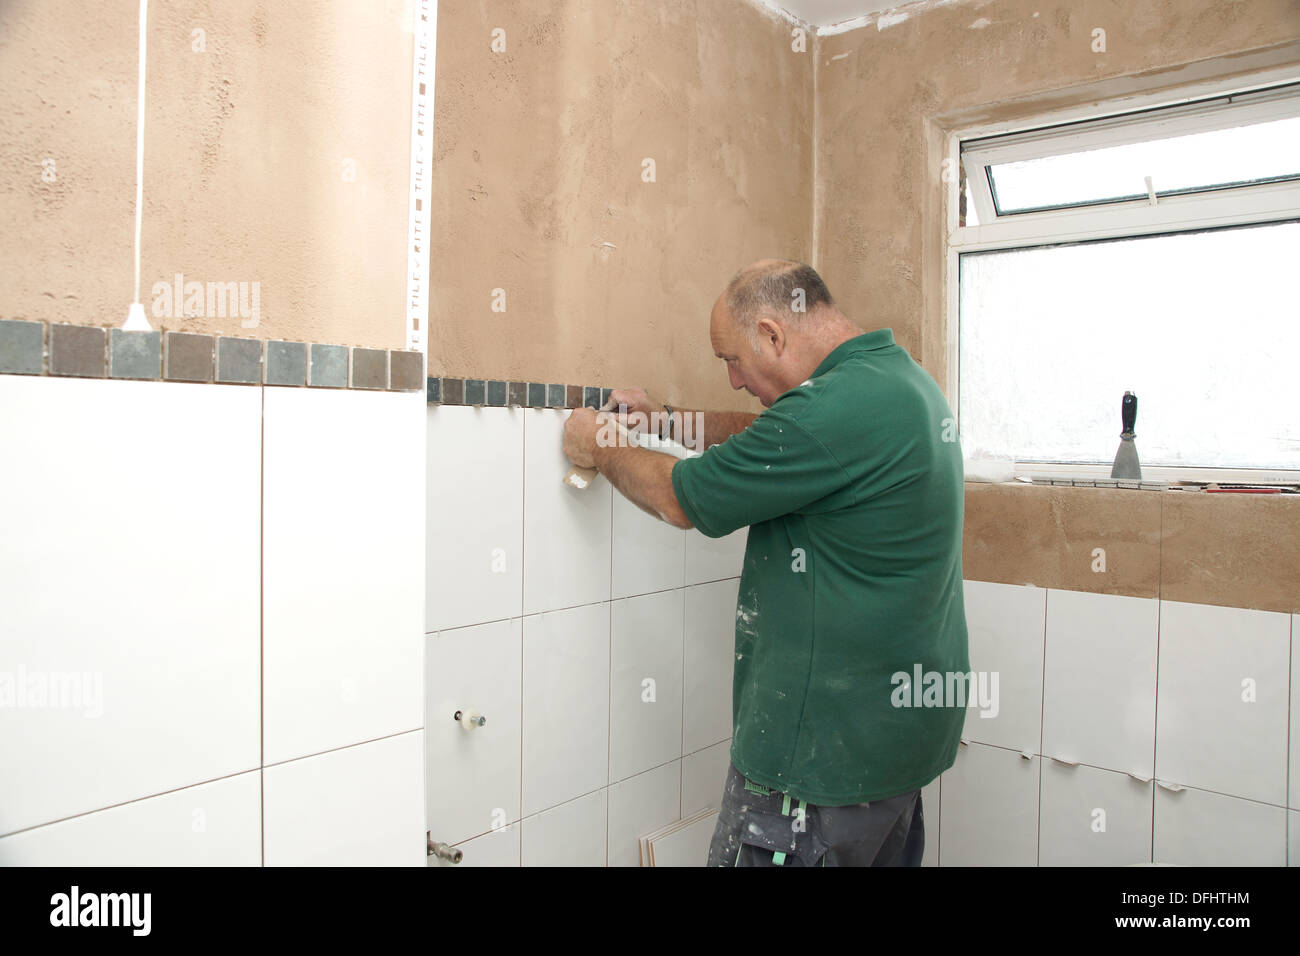 Tiler attaching tiles in a wet room / shower / bathroom on a newly ...